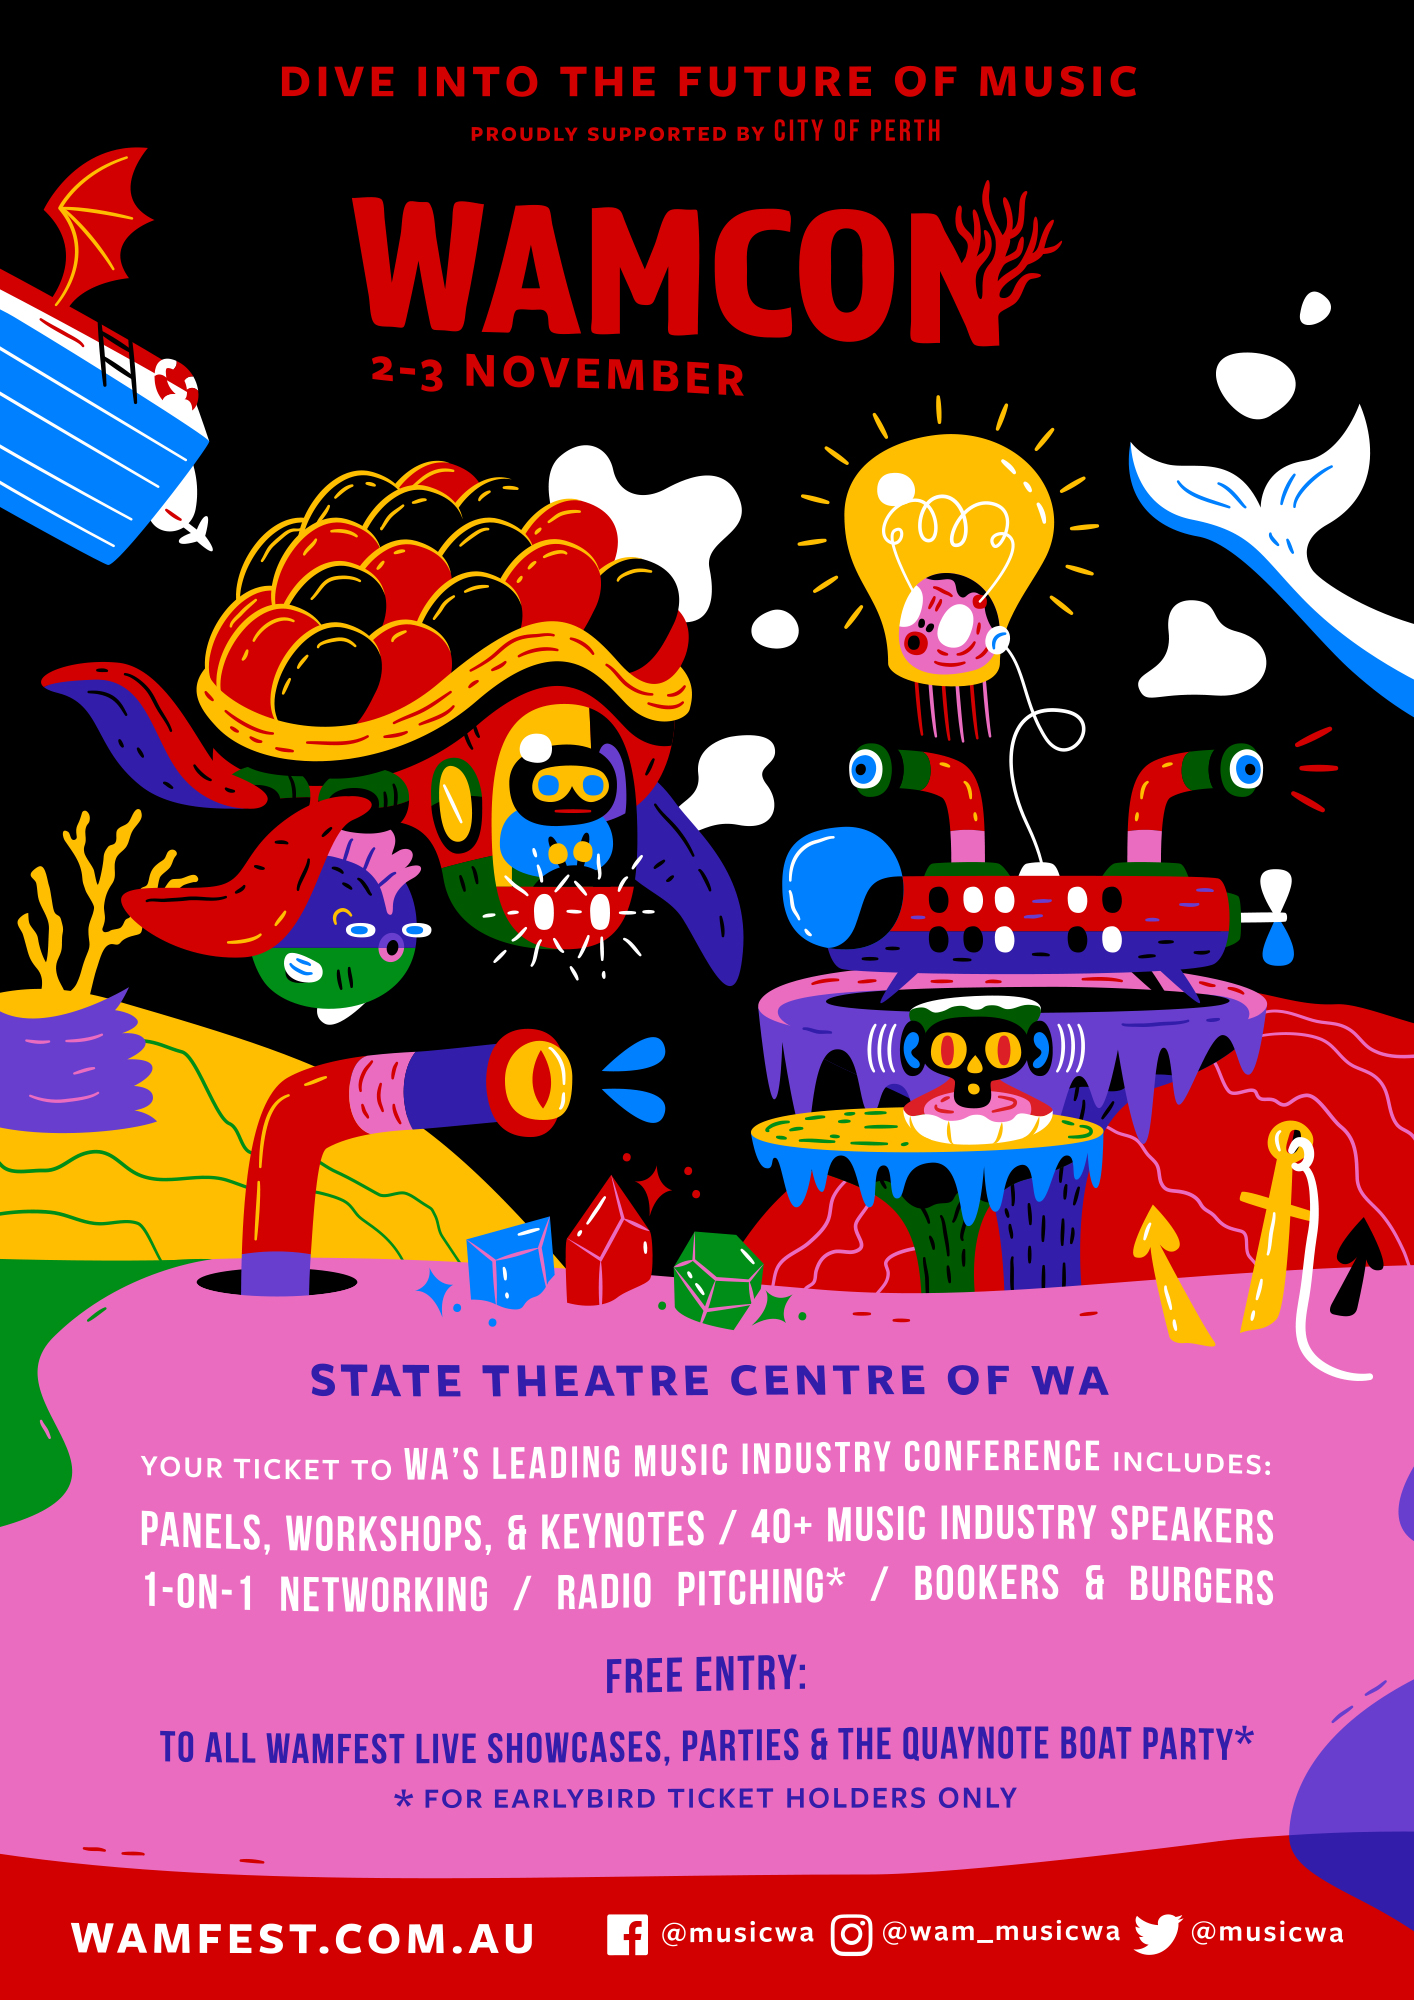 Don't miss the boat! - Proudly supported by City of Perth, WAMCon returns to the State Theatre Centre of WA on Friday 2 - Saturday 3 November as part of WAMFest 2018. Early bird tickets are now on sale via Eventbrite until 11:30pm 14 September 2018.